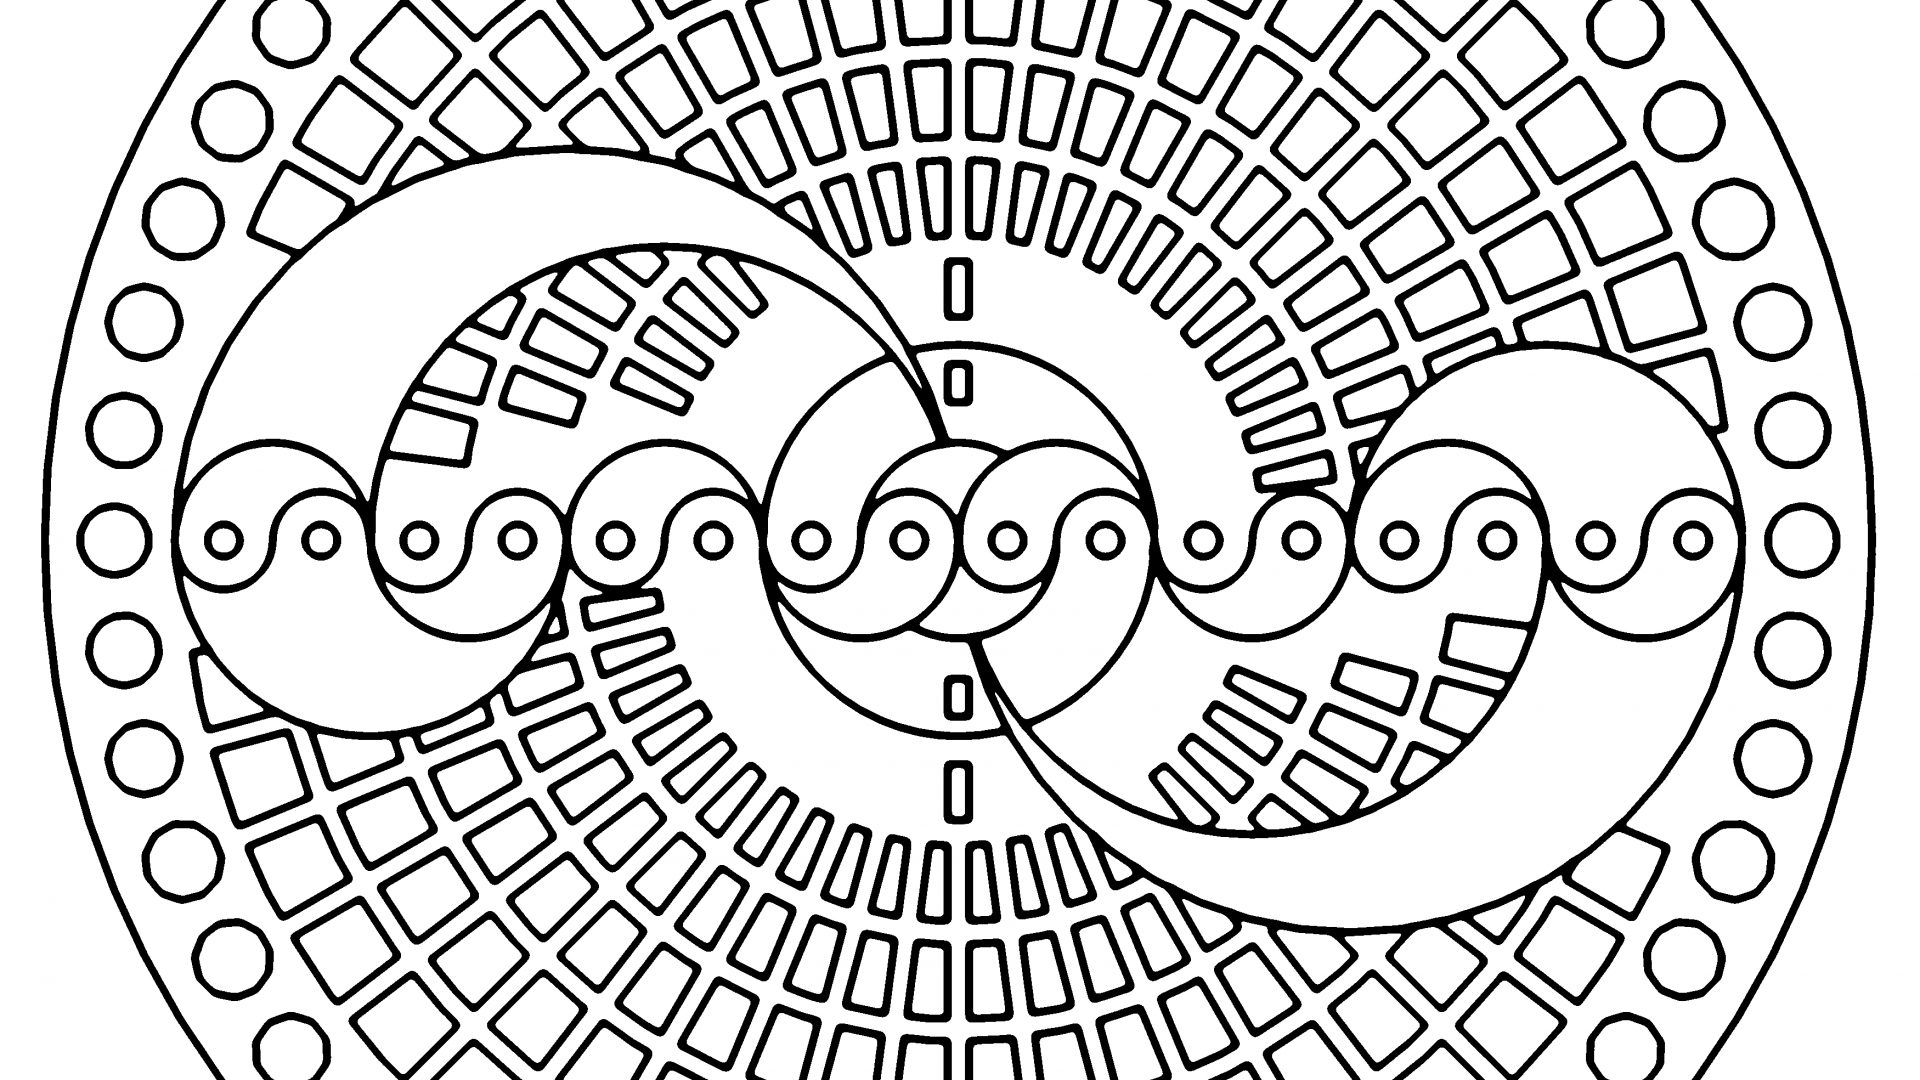 1920x1080 Coloring Pages Image Hd Shapes Colouring Car Printable Quiver App